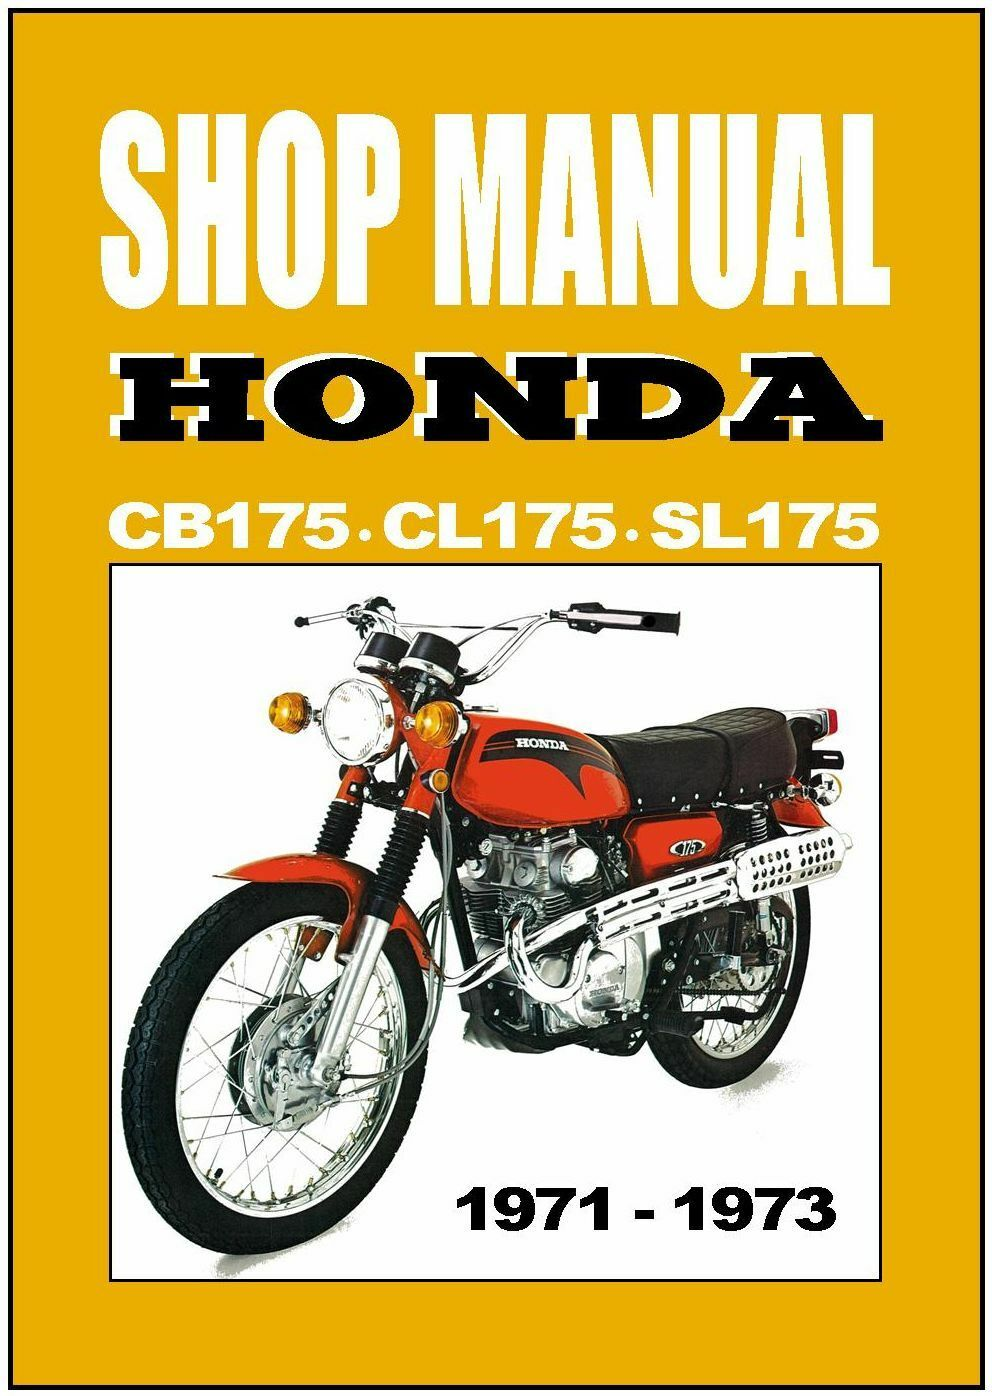 Honda Shop Service Repair Manual 175 Cb175 Cl175 Sl175 Ebay Wiring Diagram